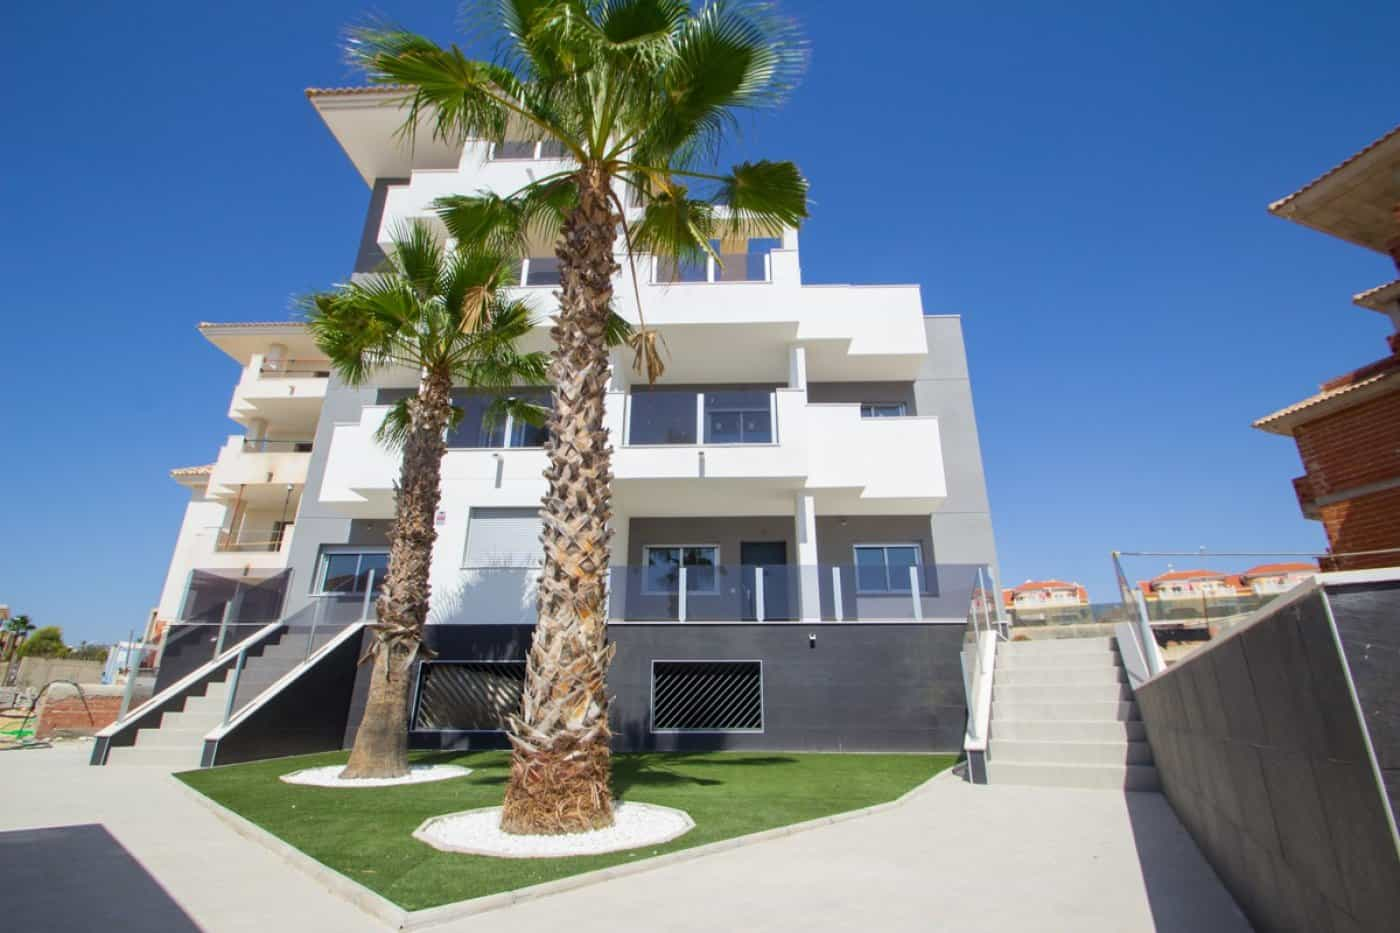 Appartement te koop in Orihuela Costa (Spanje, Costa Blanca)